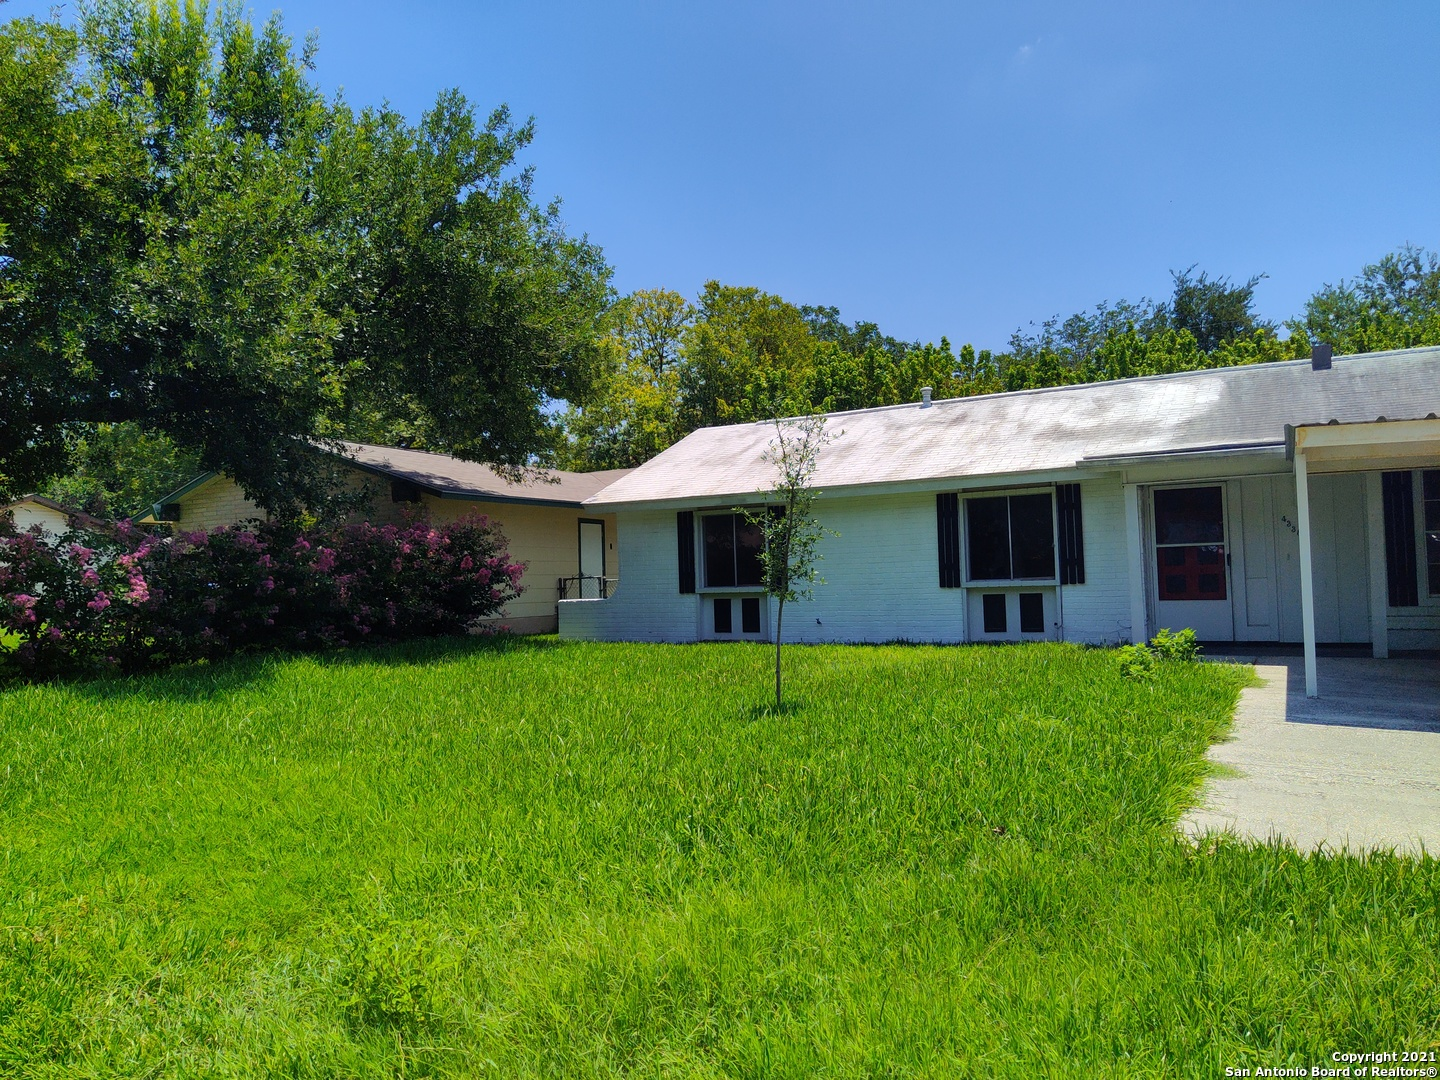 Brand new wood vinyl and paint inside. A desirable neighborhood located centrally close to shopping,